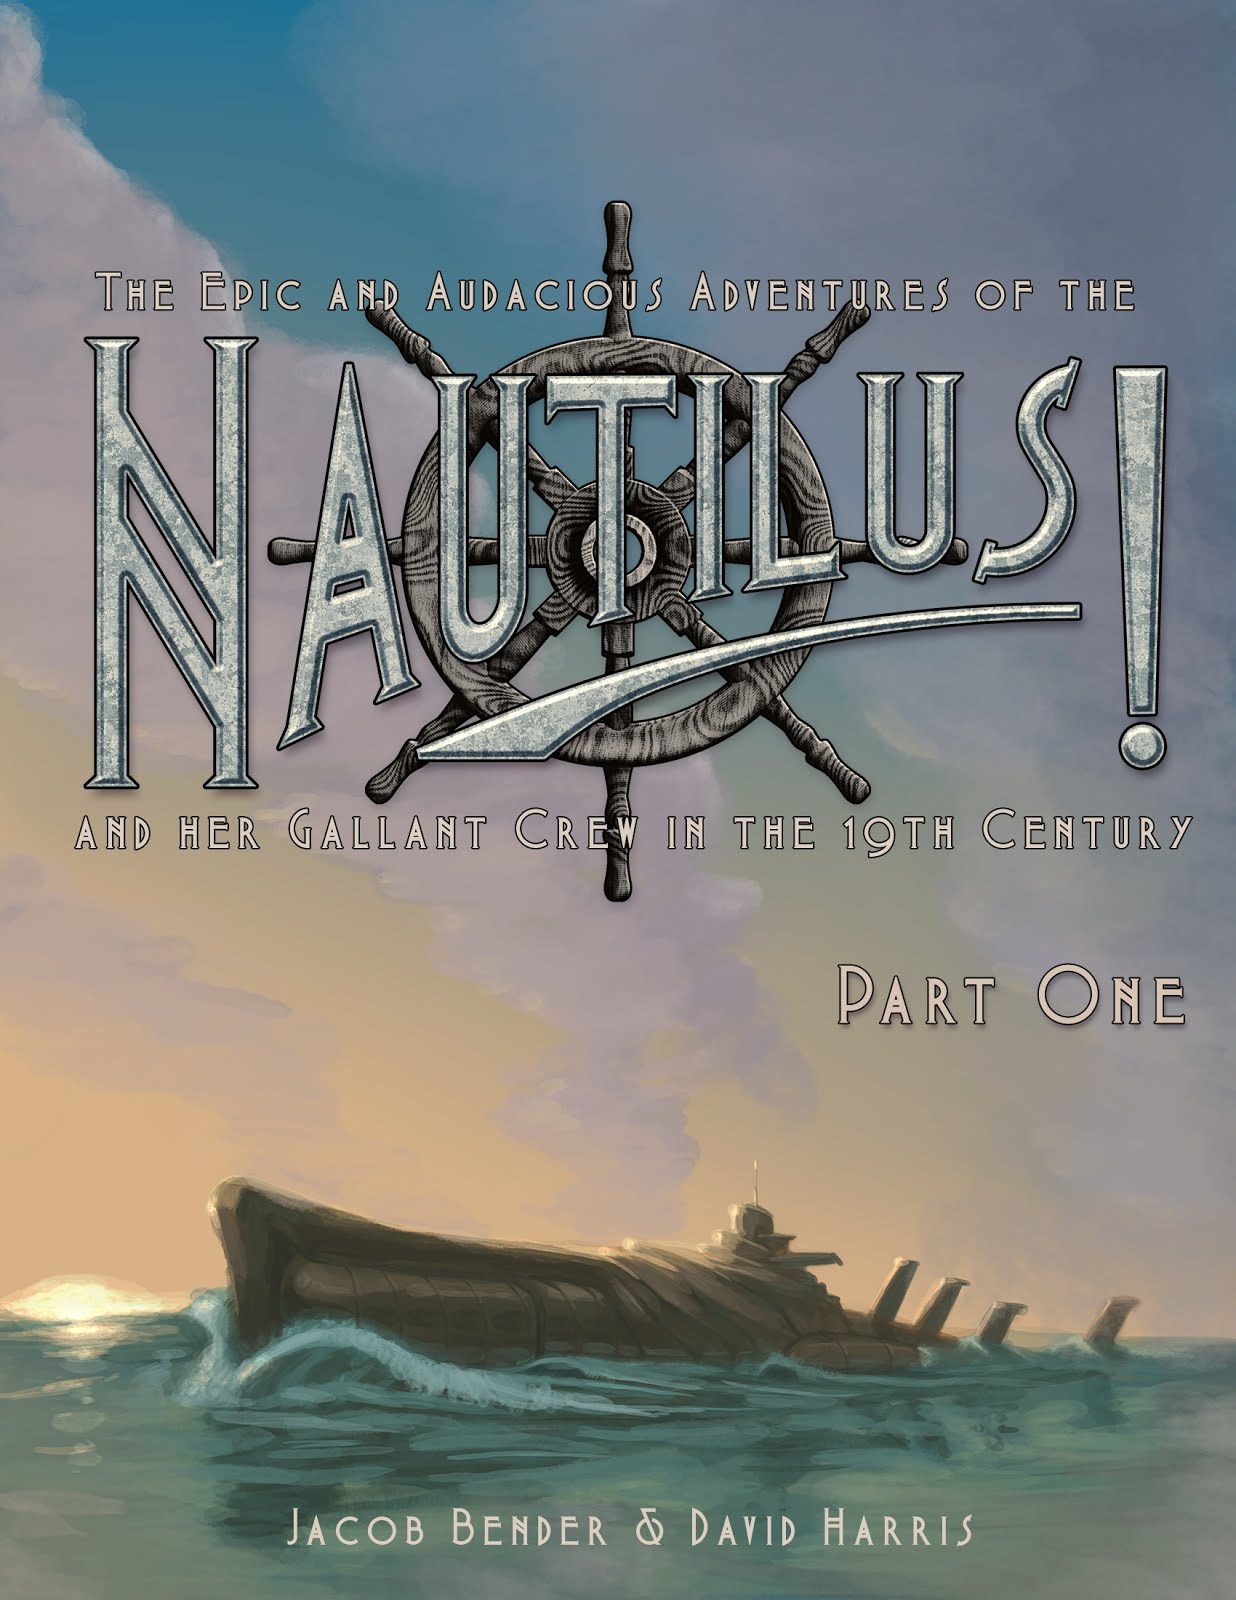 The Epic and Audacious Adventures of the NAUTILUS! and her Gallant Crew in the 19th Century